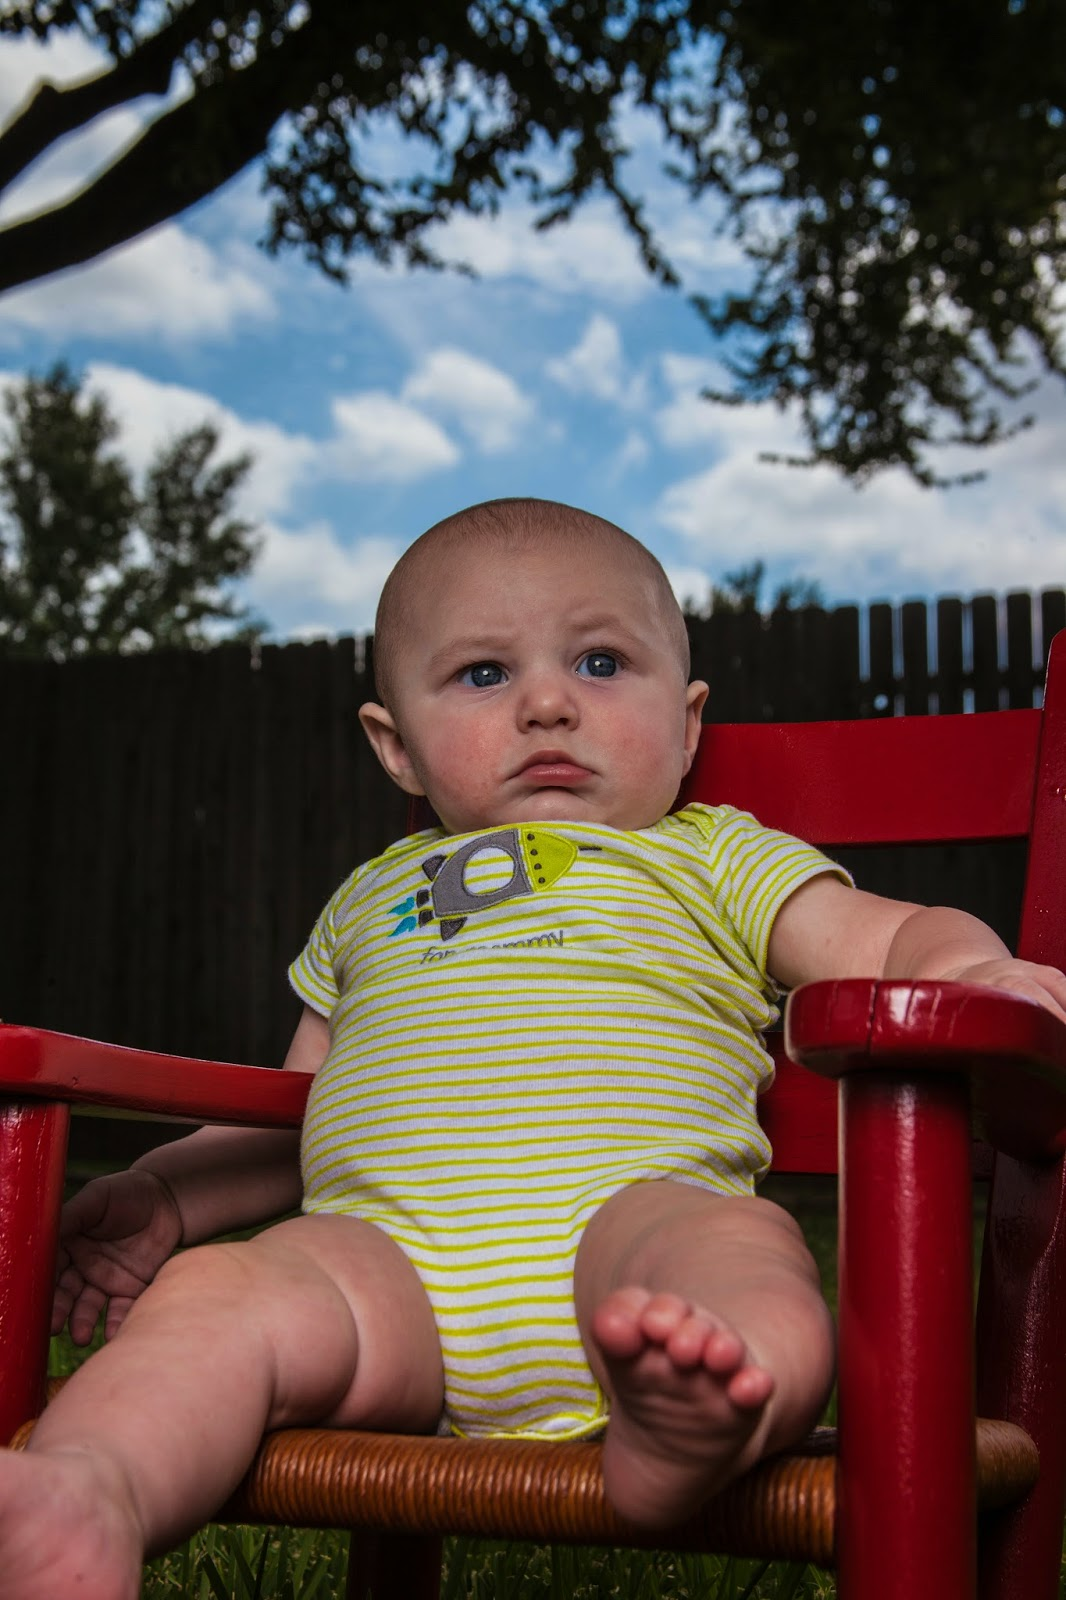 baby sitting chair india swivel hong kong jareddavidsonphotography in red